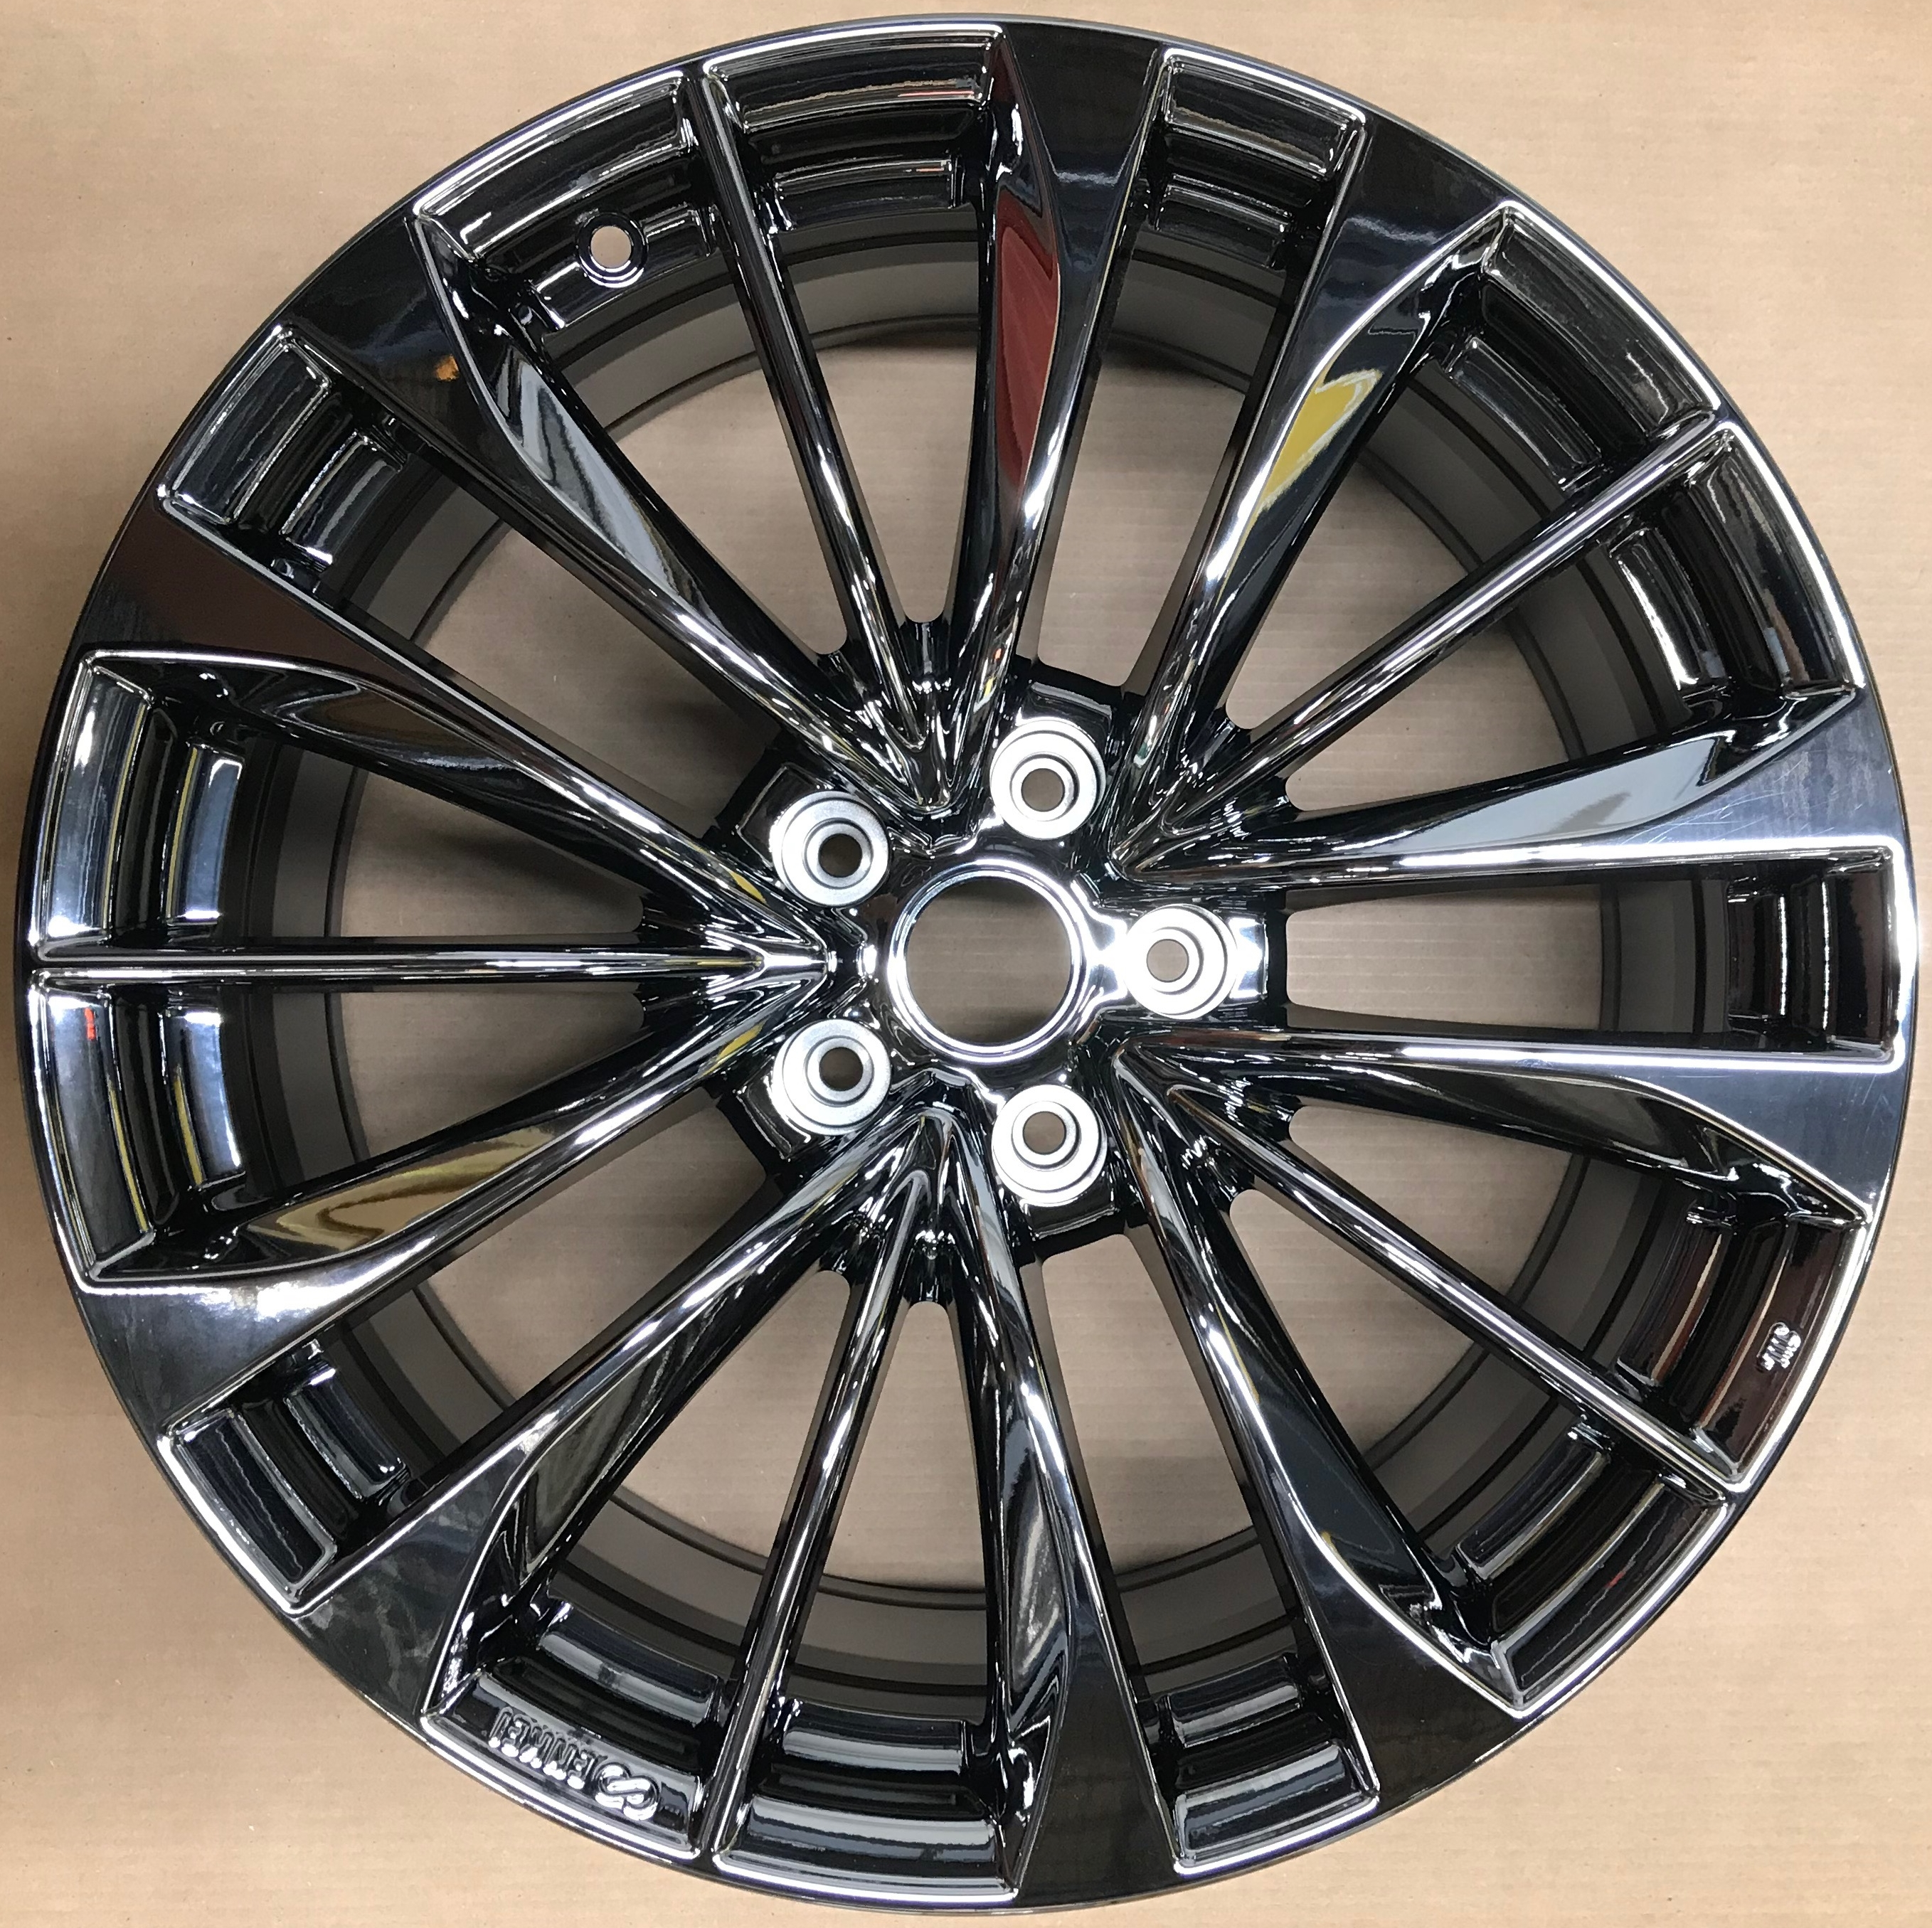 contact infiniti department specials service parts gator vehicle of new quote used richmond bc alloy infinity request accessories